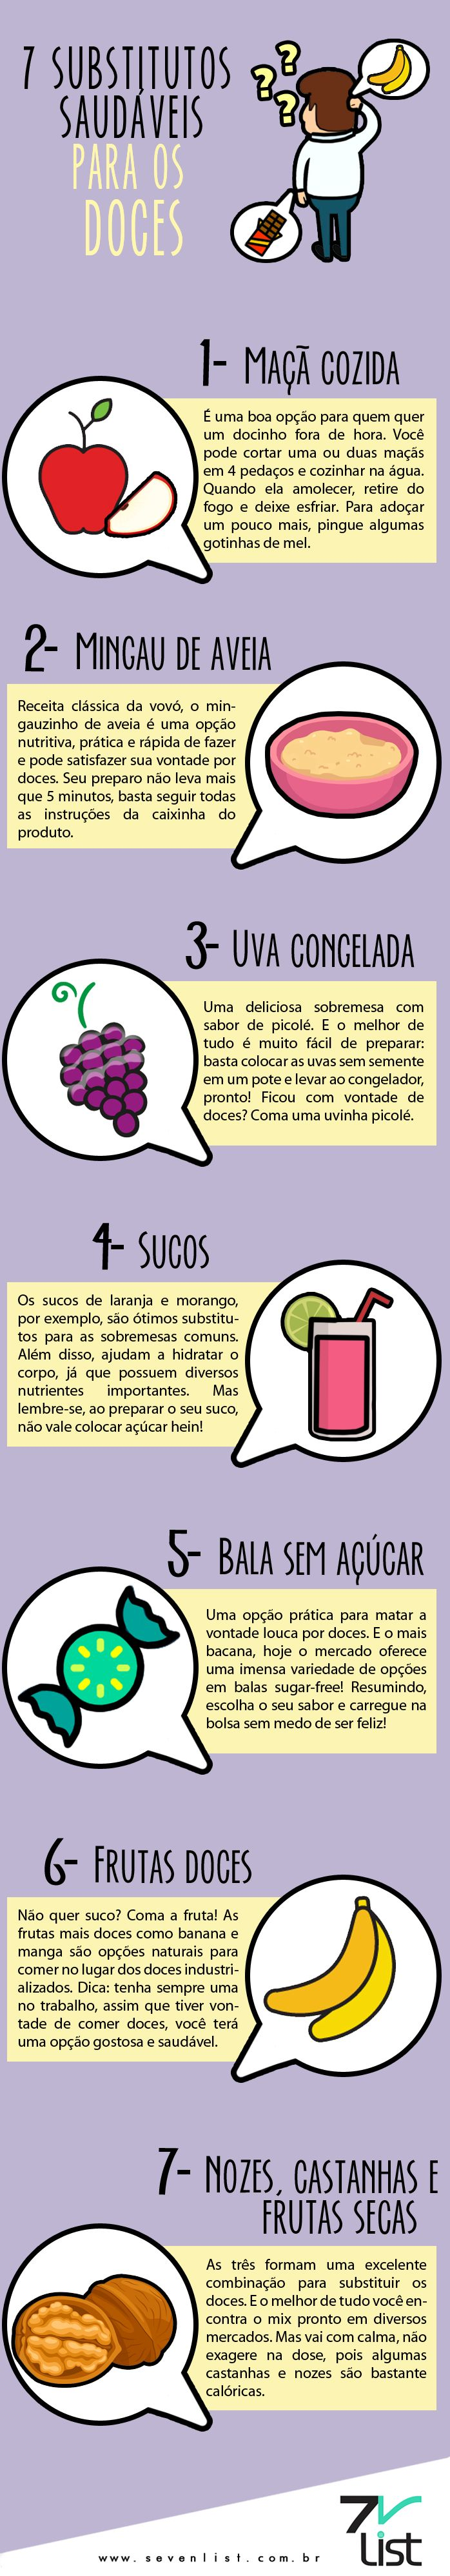 7 substitutos dos doces